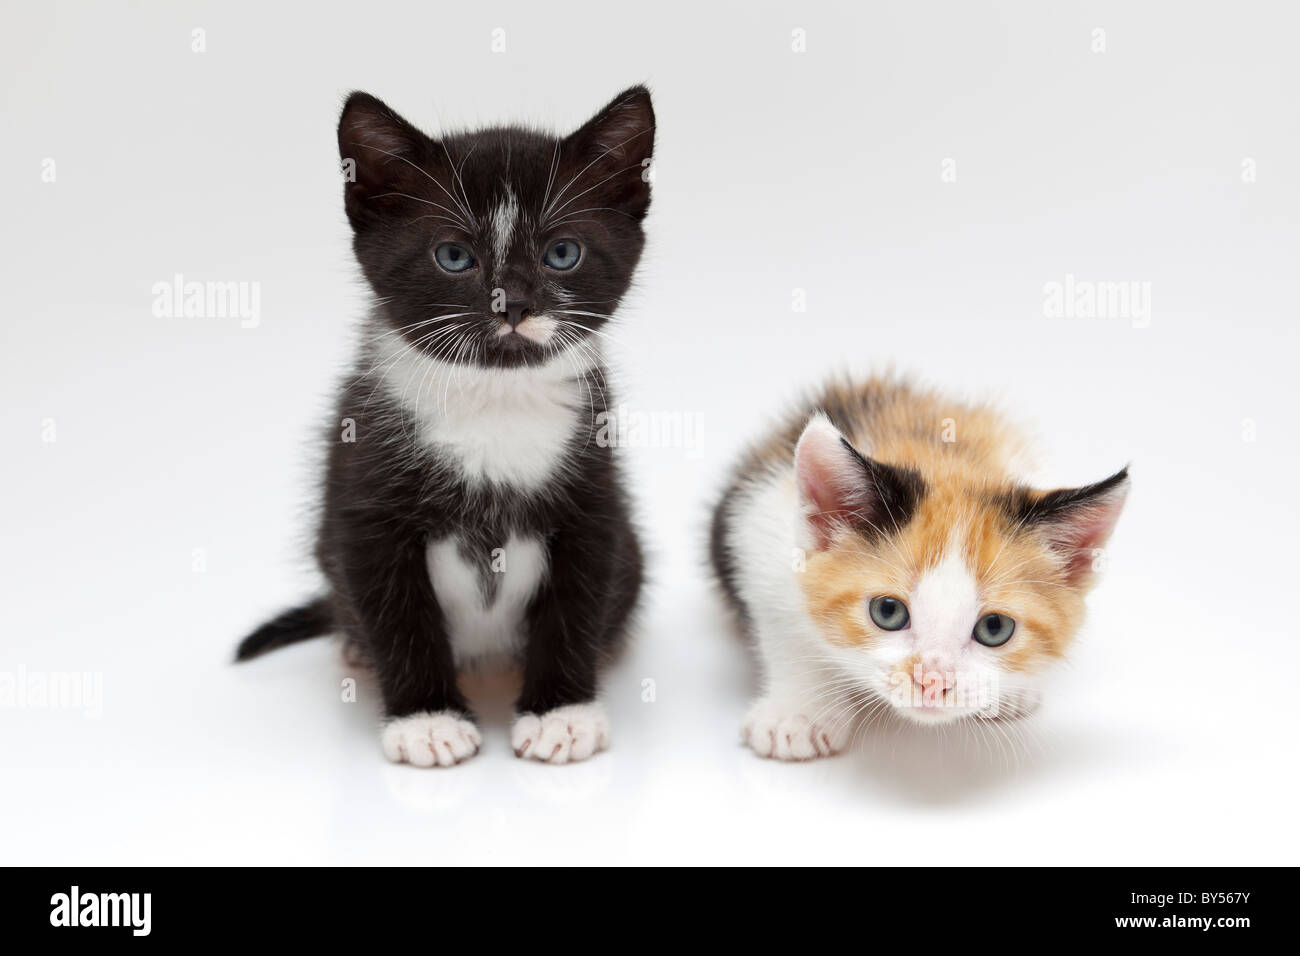 two small cats on white background a cat is black and another